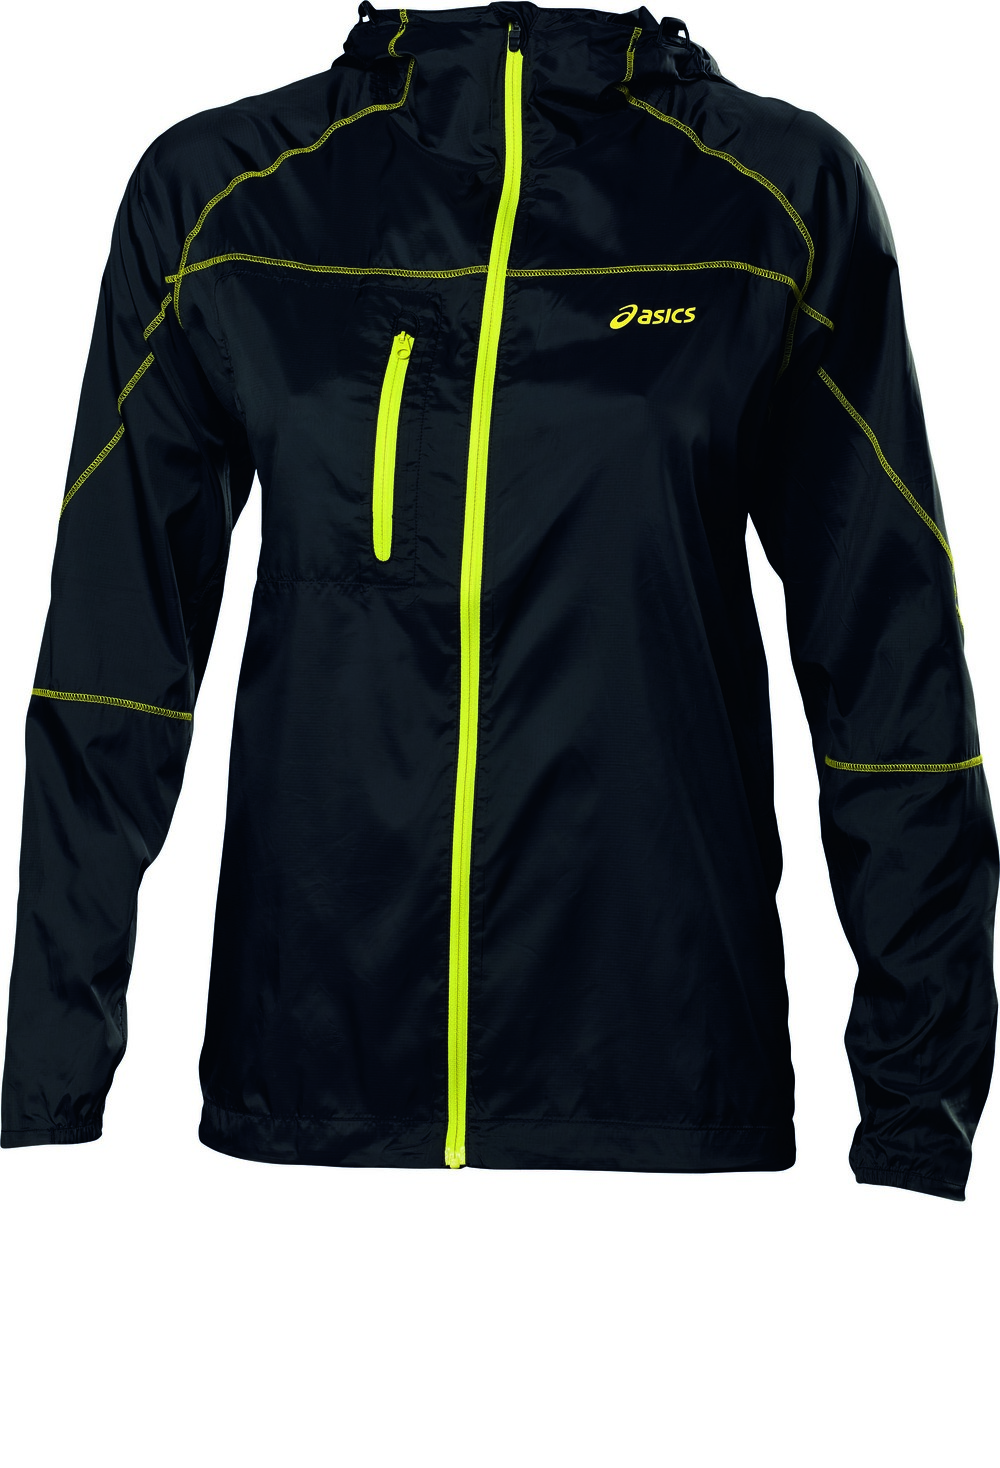 ASICS - Women FUJI PACKABLE JACKET - 80 euros http://www.asics.fr/course-a-pied/